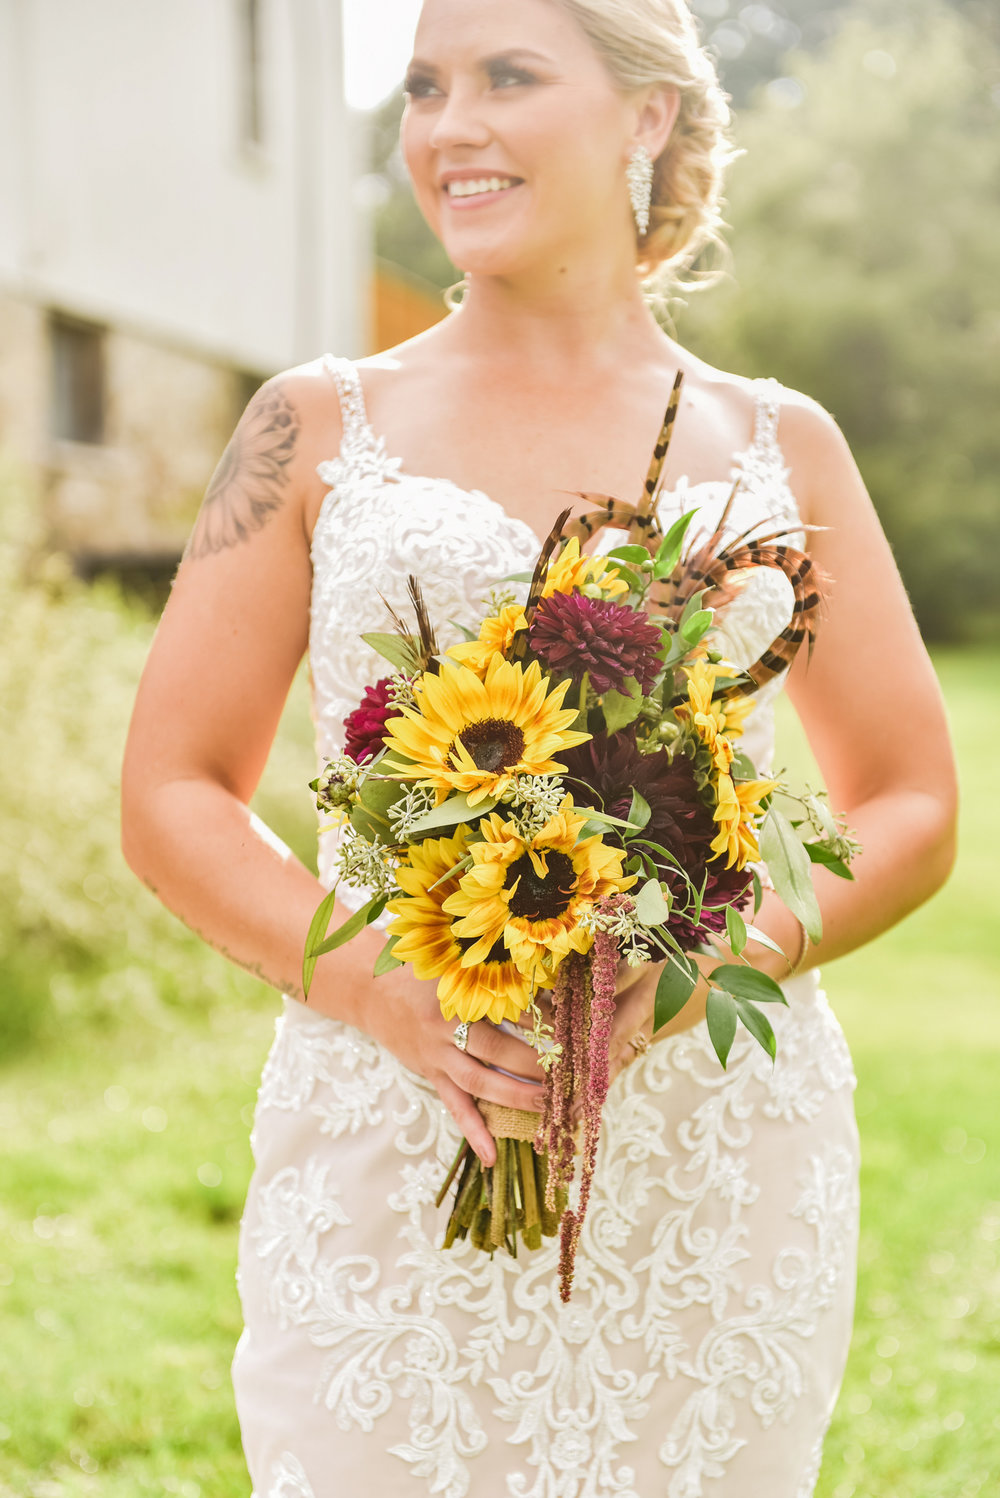 Cobblestone_Wedding_Barn_Rochester_Wedding_JILL_STUDIO_Rochester_NY_Photographer_DSC_7561.jpg